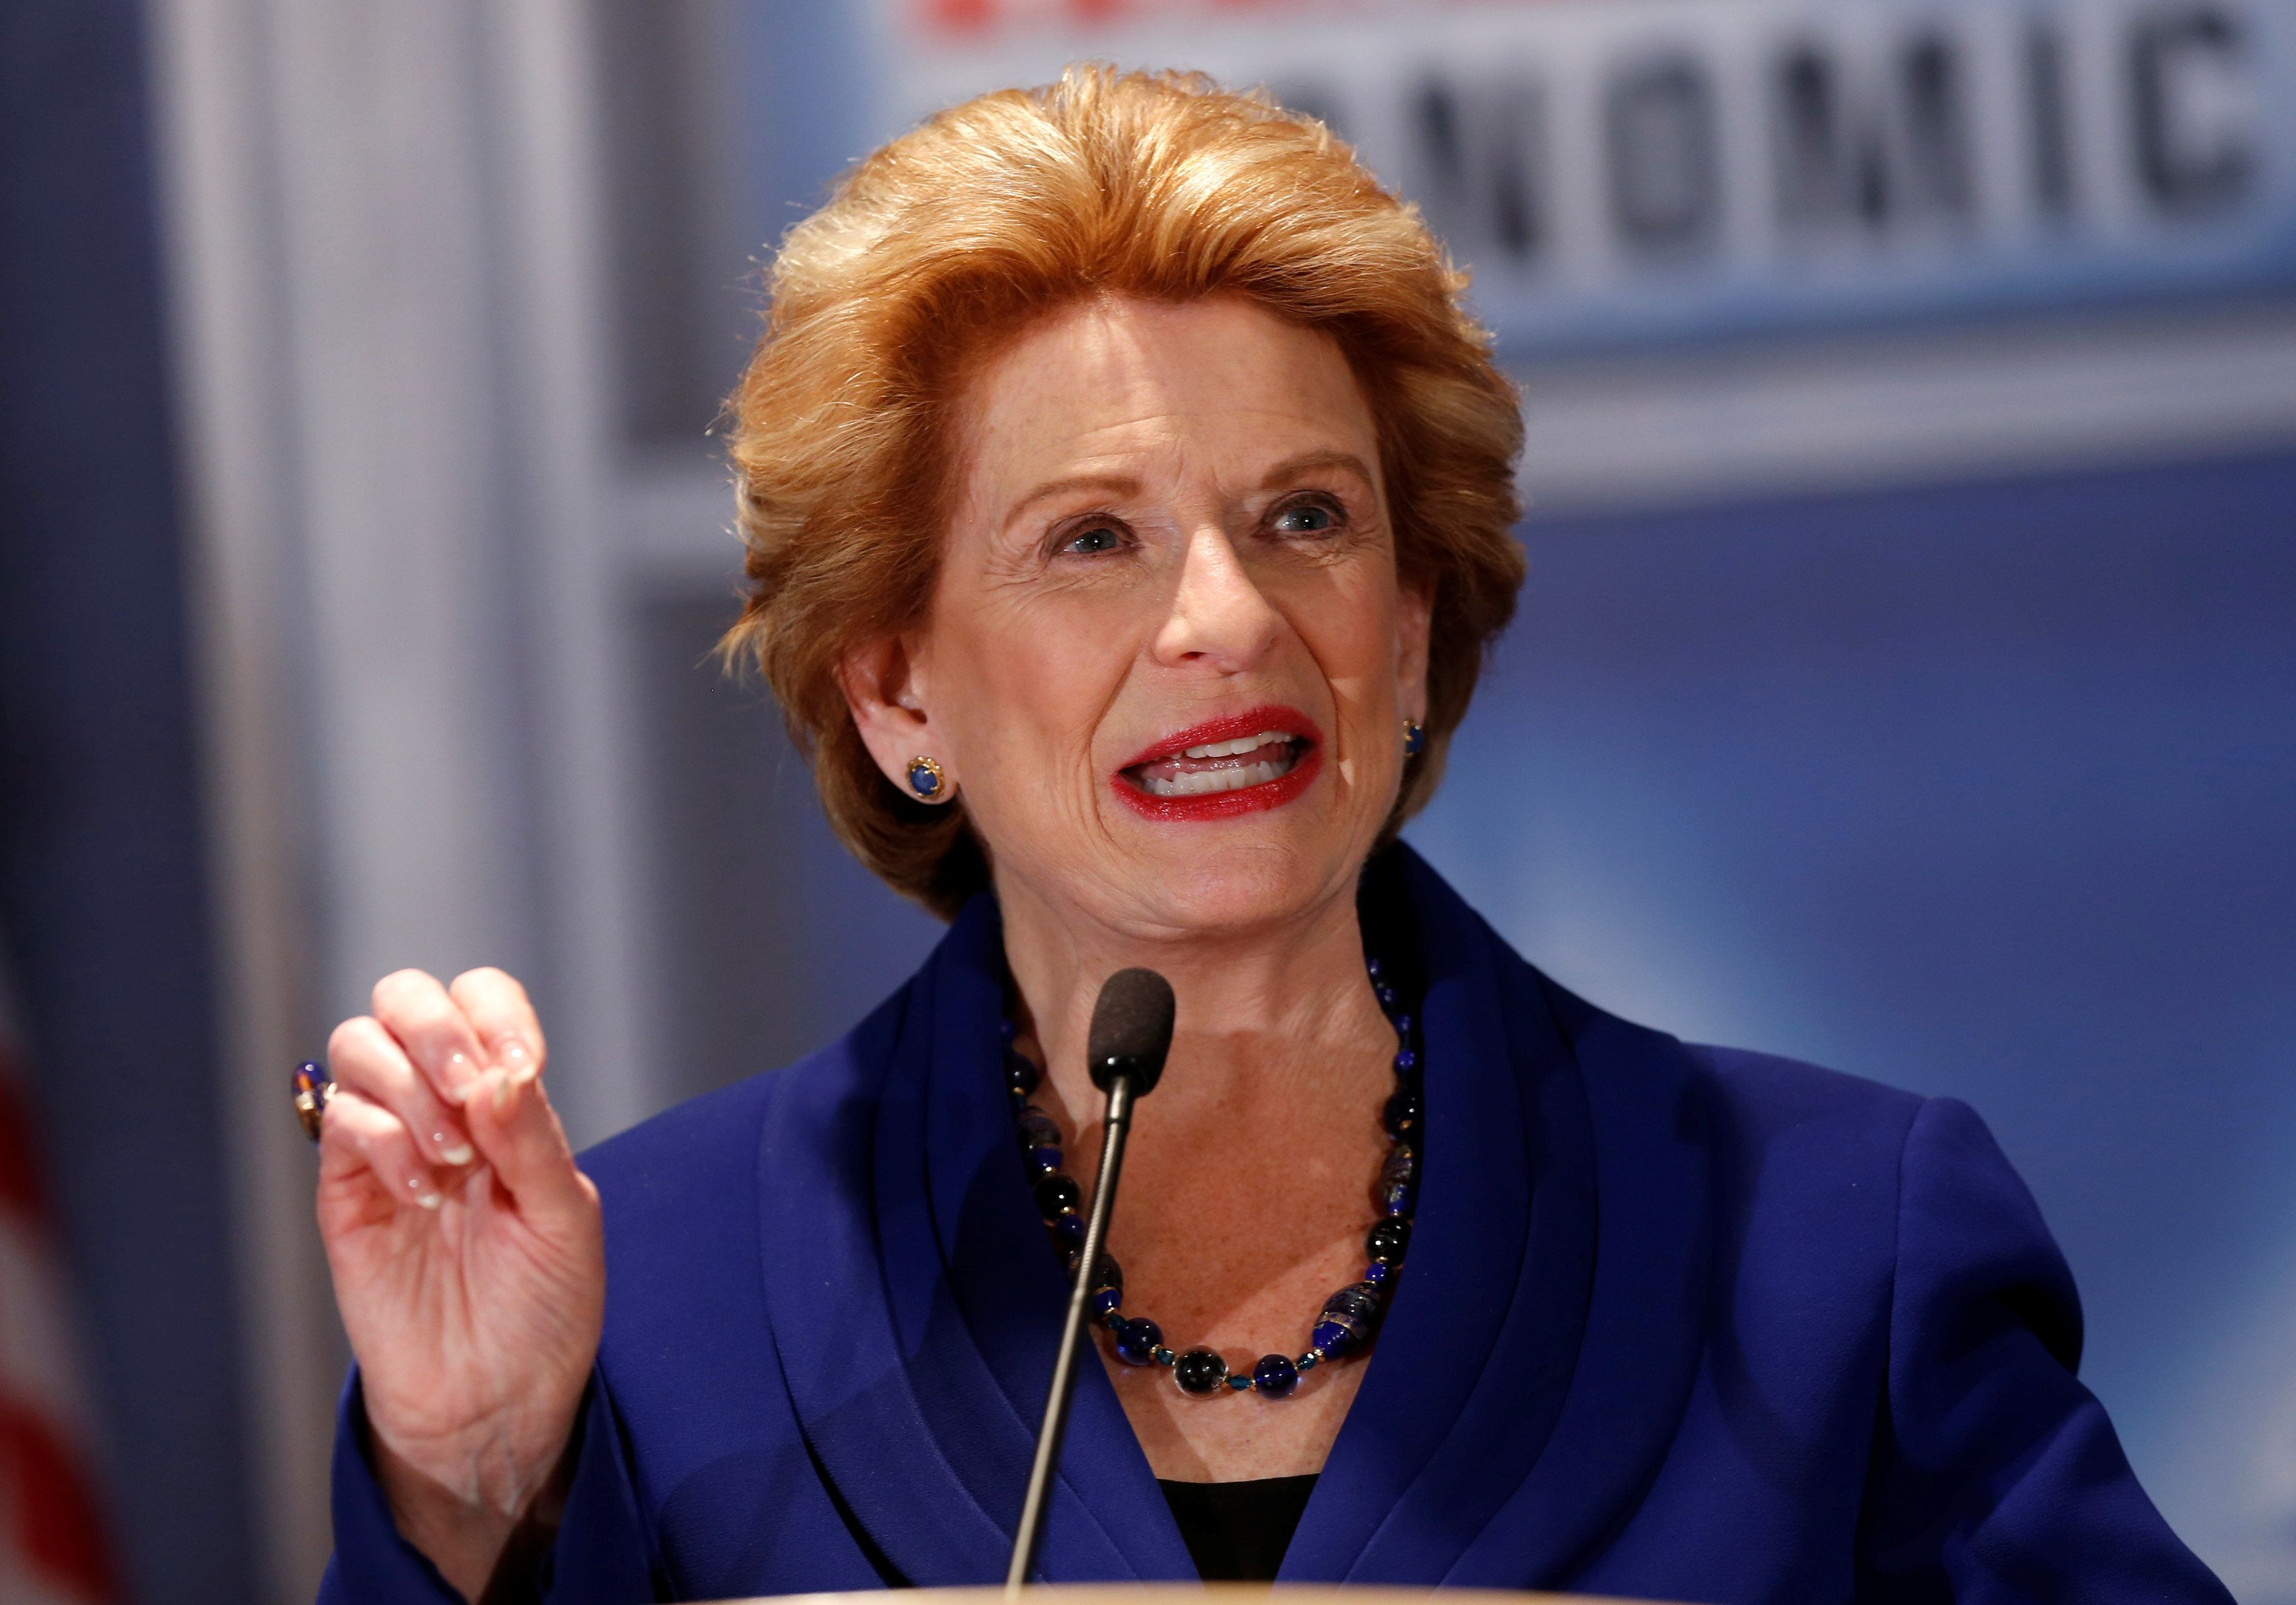 Michigan Sen. Debbie Stabenow is running for re-election in November.